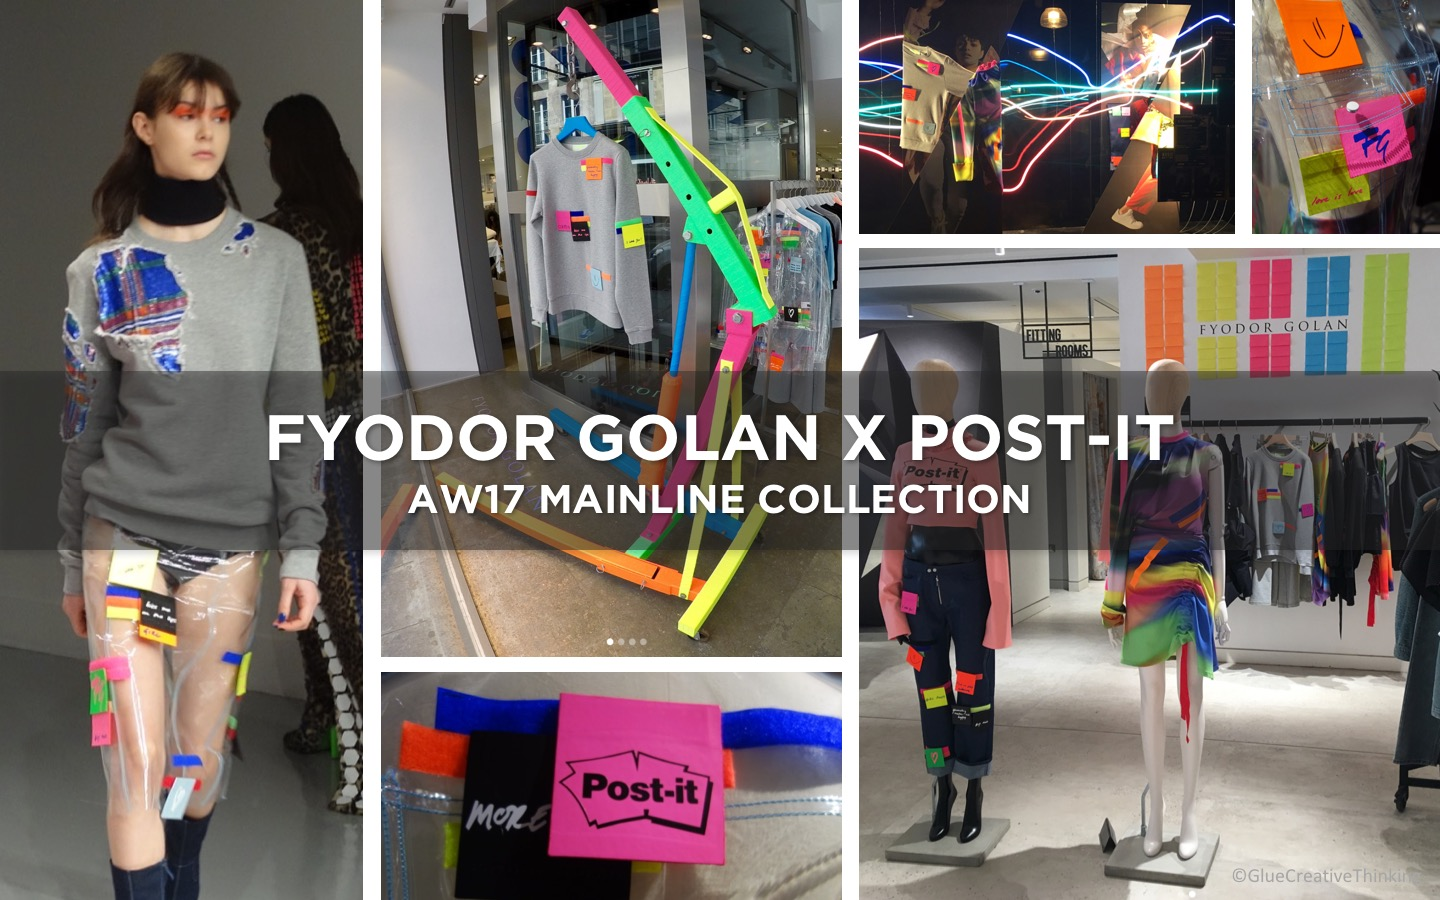 FYODOR GOLAN X POST-IT